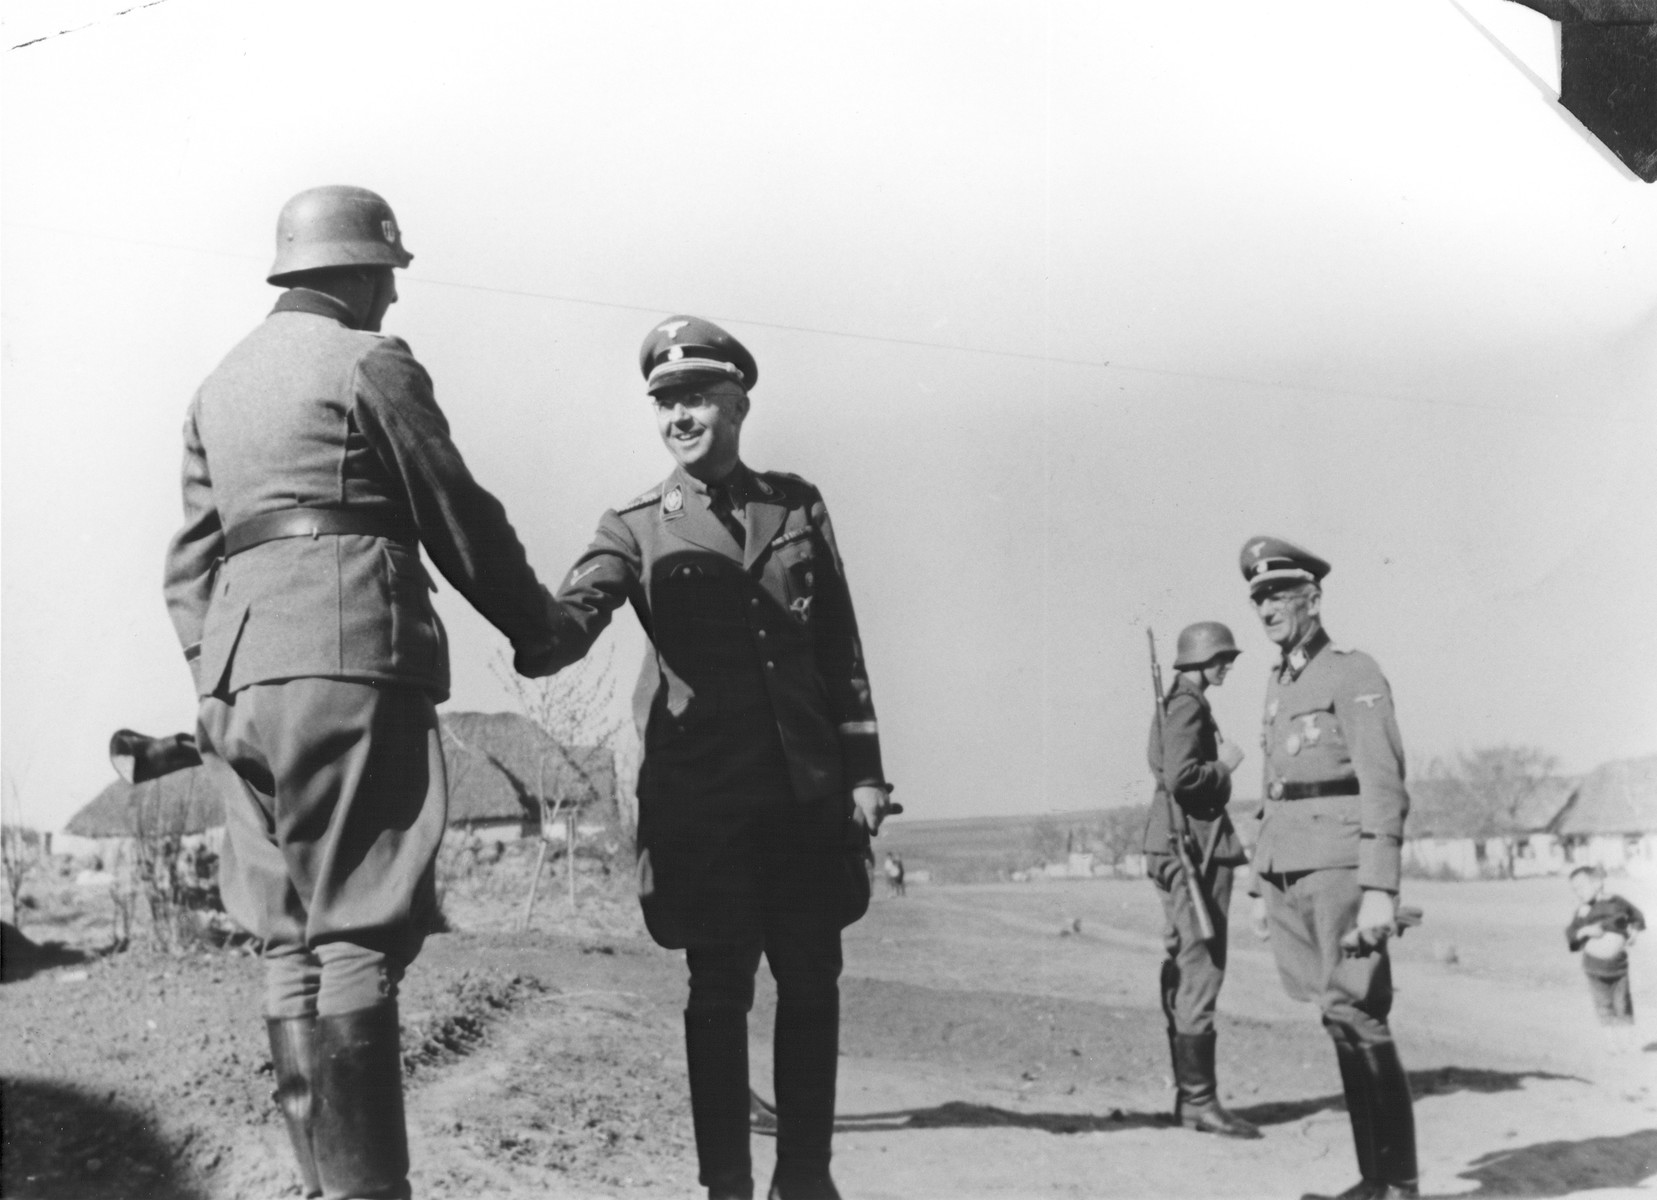 Reichsfuehrer-SS Heinrich Himmler shakes hands with a member of the Waffen-SS Armored Division Wiking during an official visit.  SS-Obergruppenfuehrer and General Herbert O. Gille (commander of the Wiking Division from May 1943 until August 1944) is pictured at the right wearing glasses.